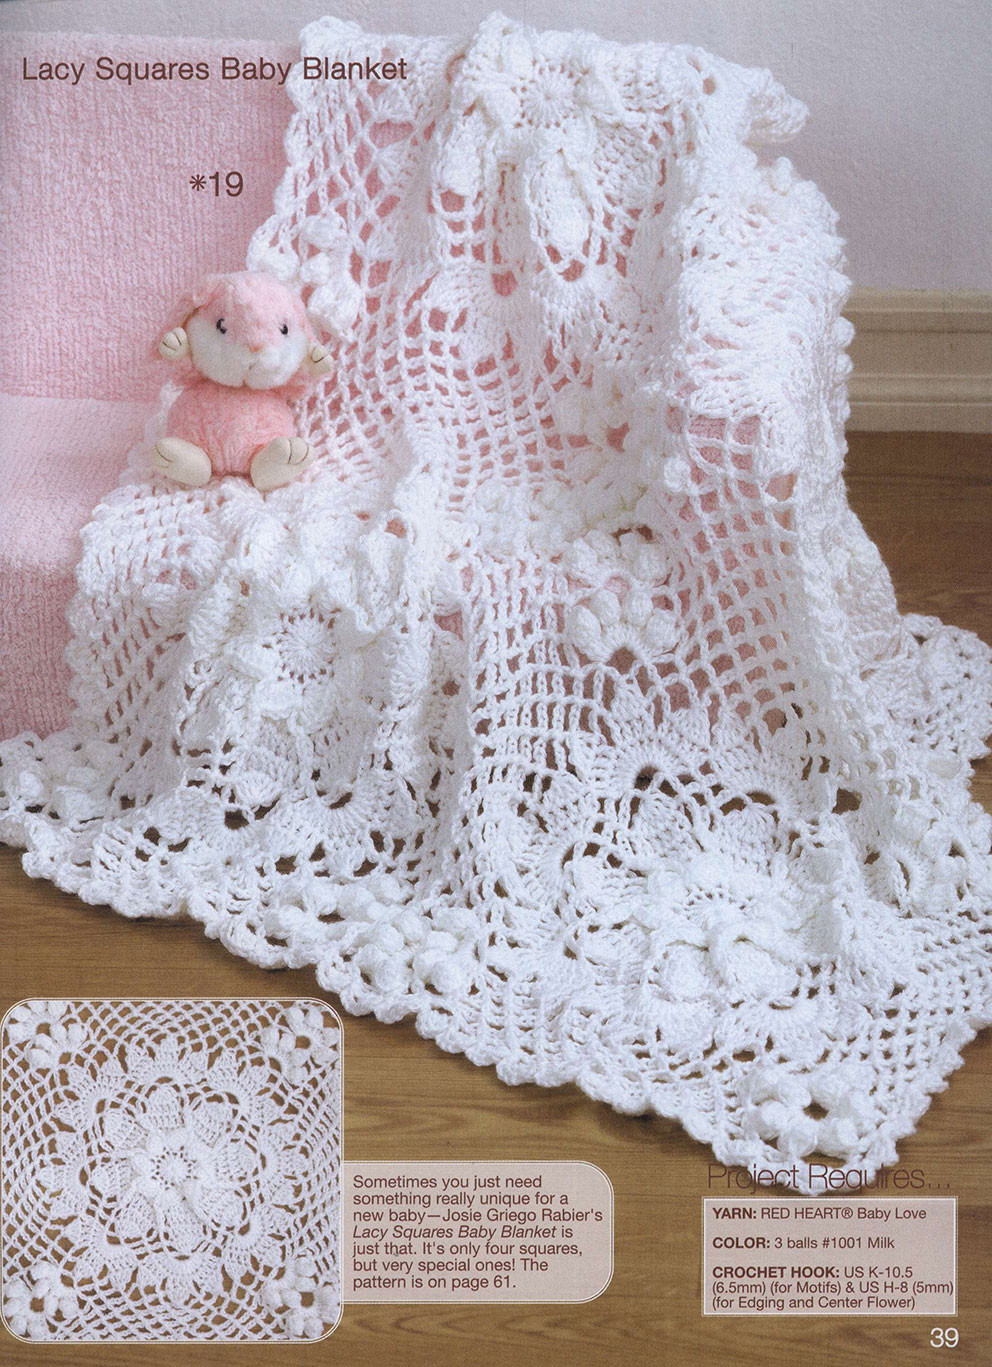 Crochet Patterns for Baby Blankets Unique Lace Squares Crochet Baby Blanket ⋆ Crochet Kingdom Of Great 50 Photos Crochet Patterns for Baby Blankets